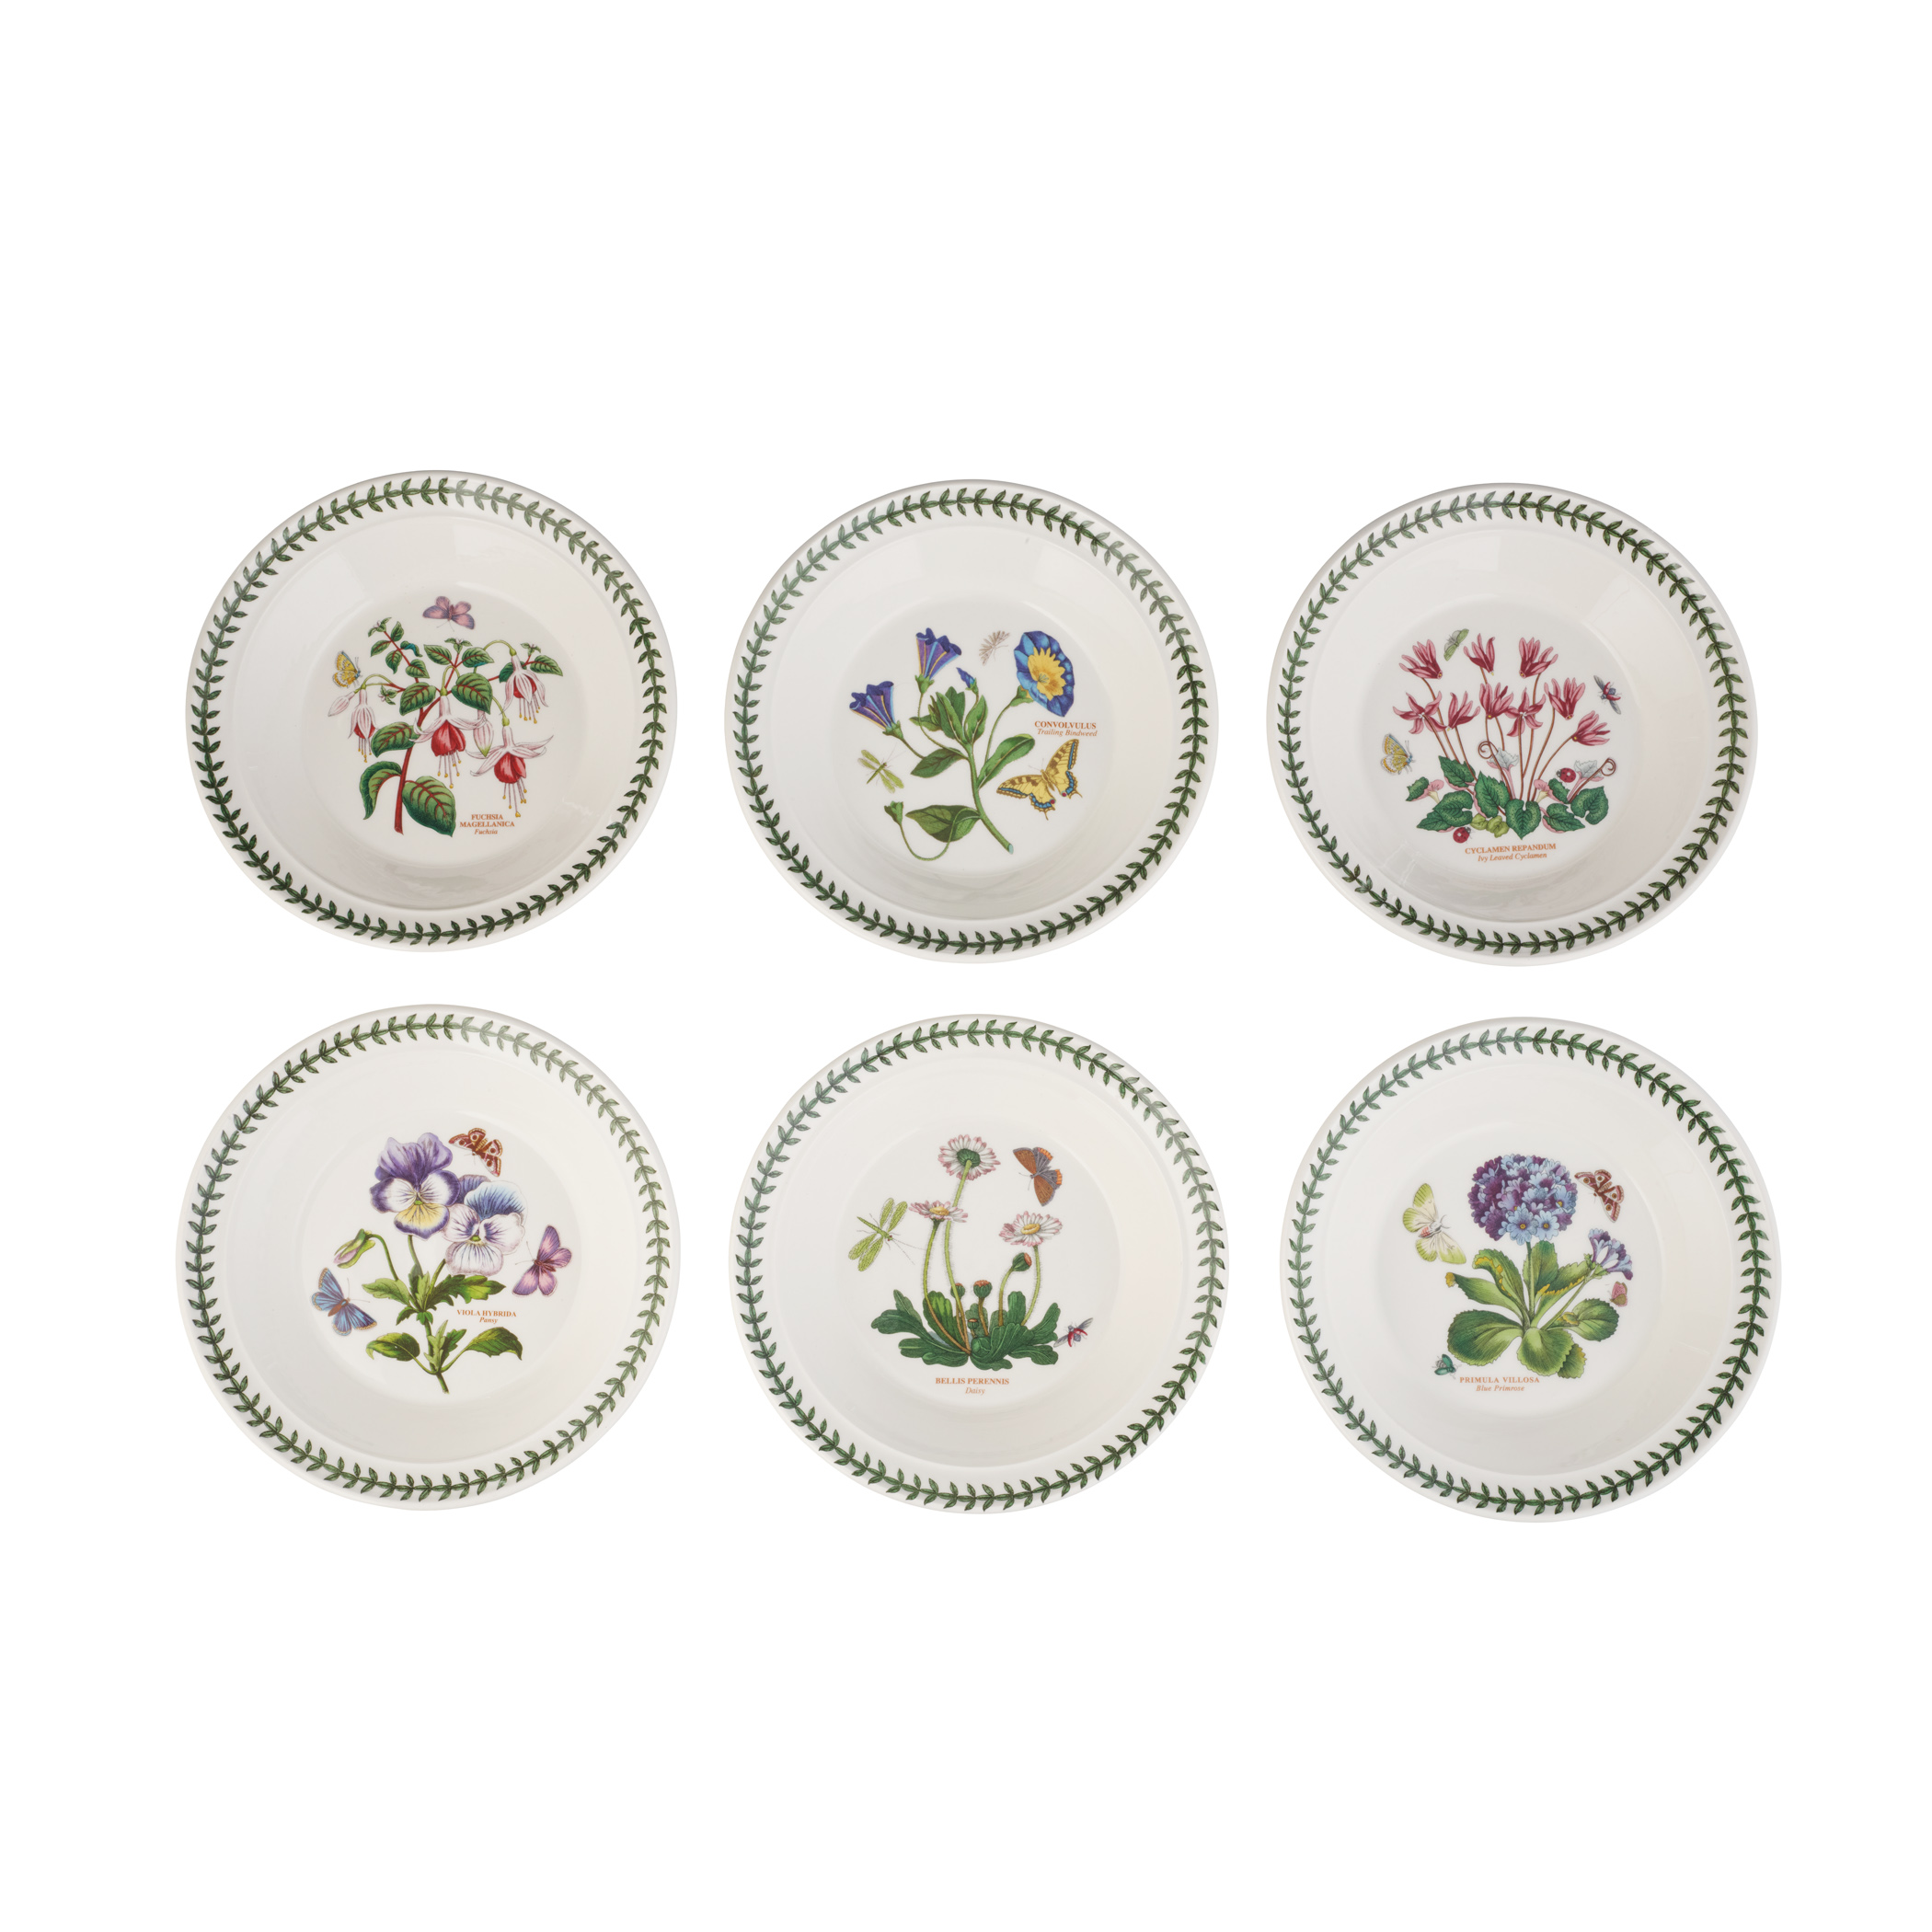 Botanic Garden 8.5 Inch Soup Plate/Bowl Set of 6 (Assorted Motifs) image number null